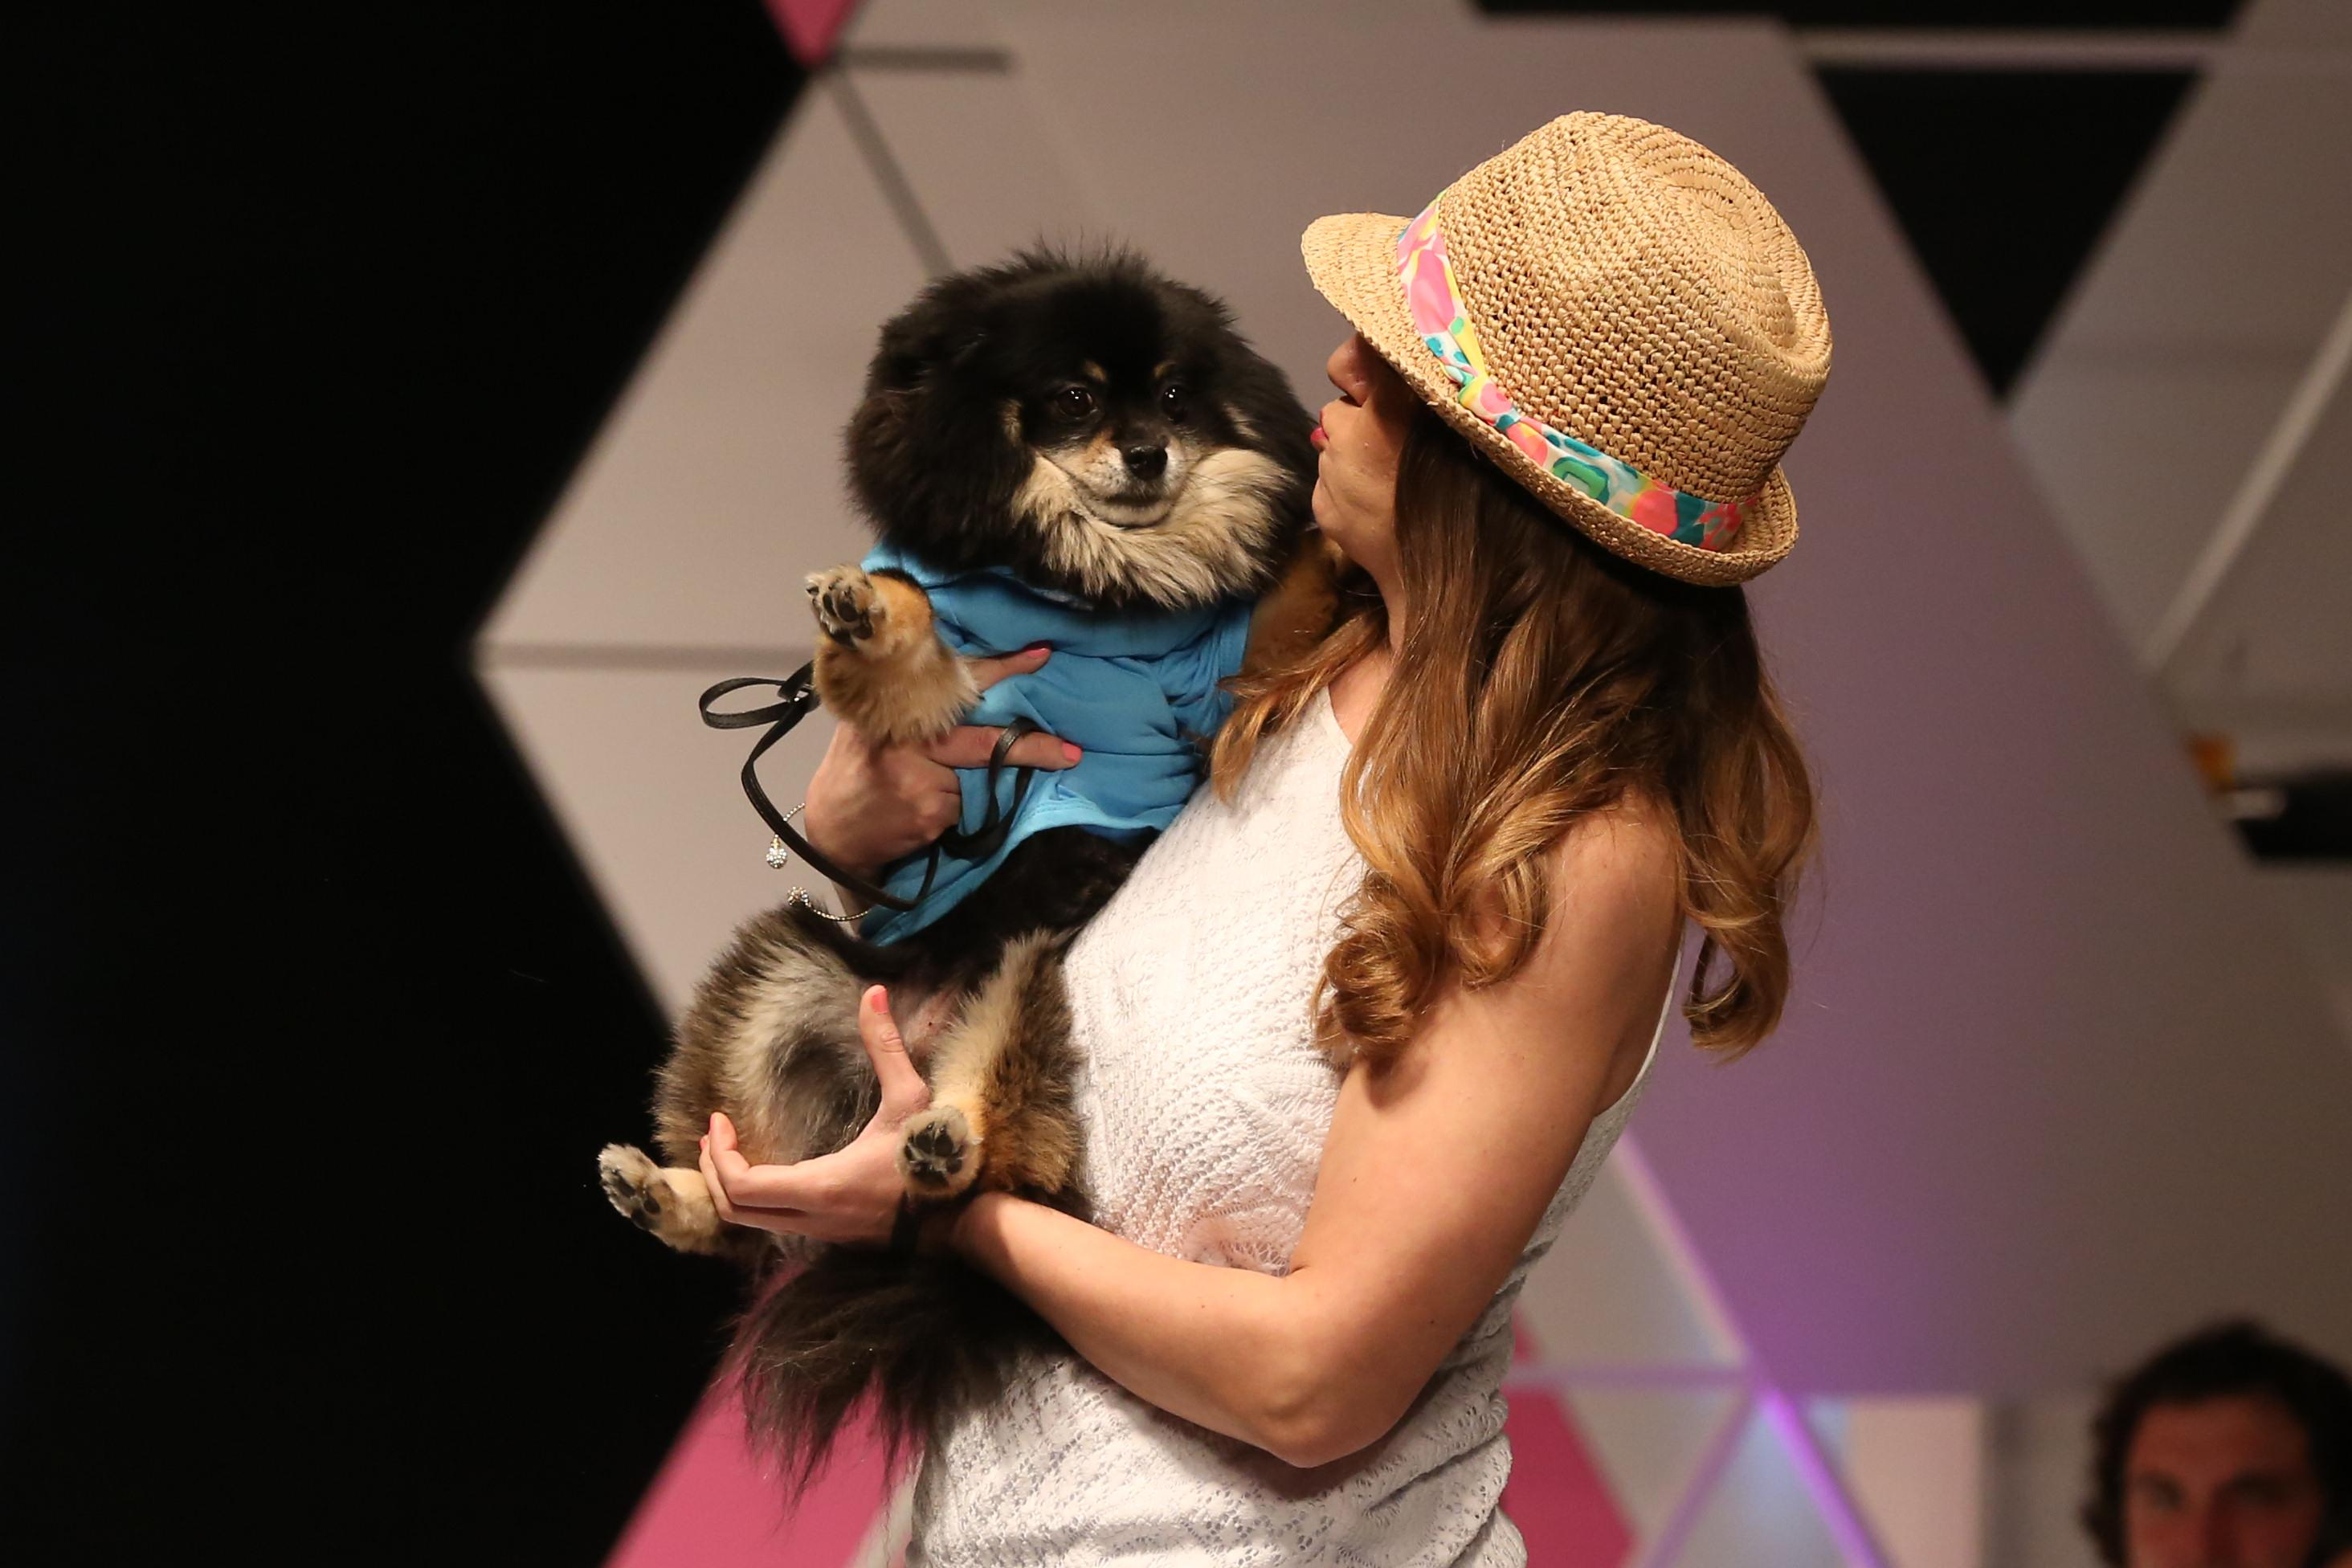 Fashion for Paws raised nearly $400,000 this year for the Humane Rescue Alliance, but the runway looks couldn't compete with the four-legged models. The April 8 event featured local philanthropists and dogs uniting for a great cause. (Amanda Andrade-Rhoades/DC Refined)